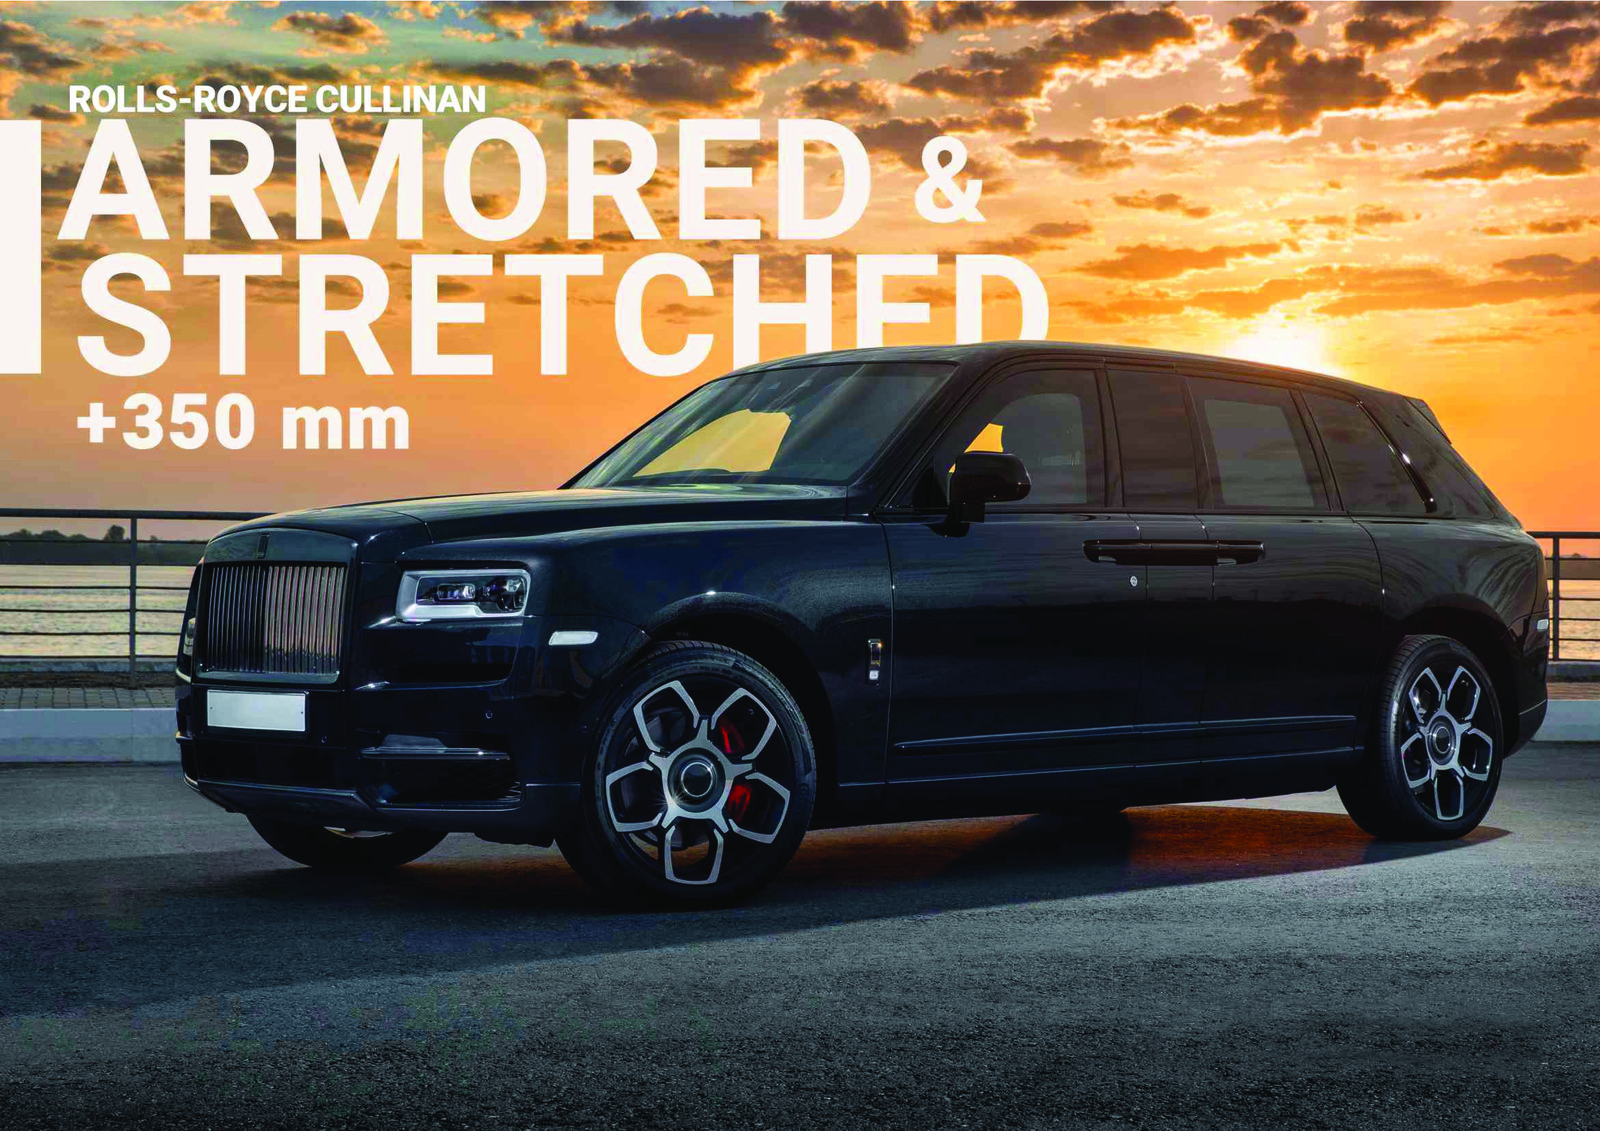 Rolls Royce Cullinan - Luxury Armored and Stretched cars